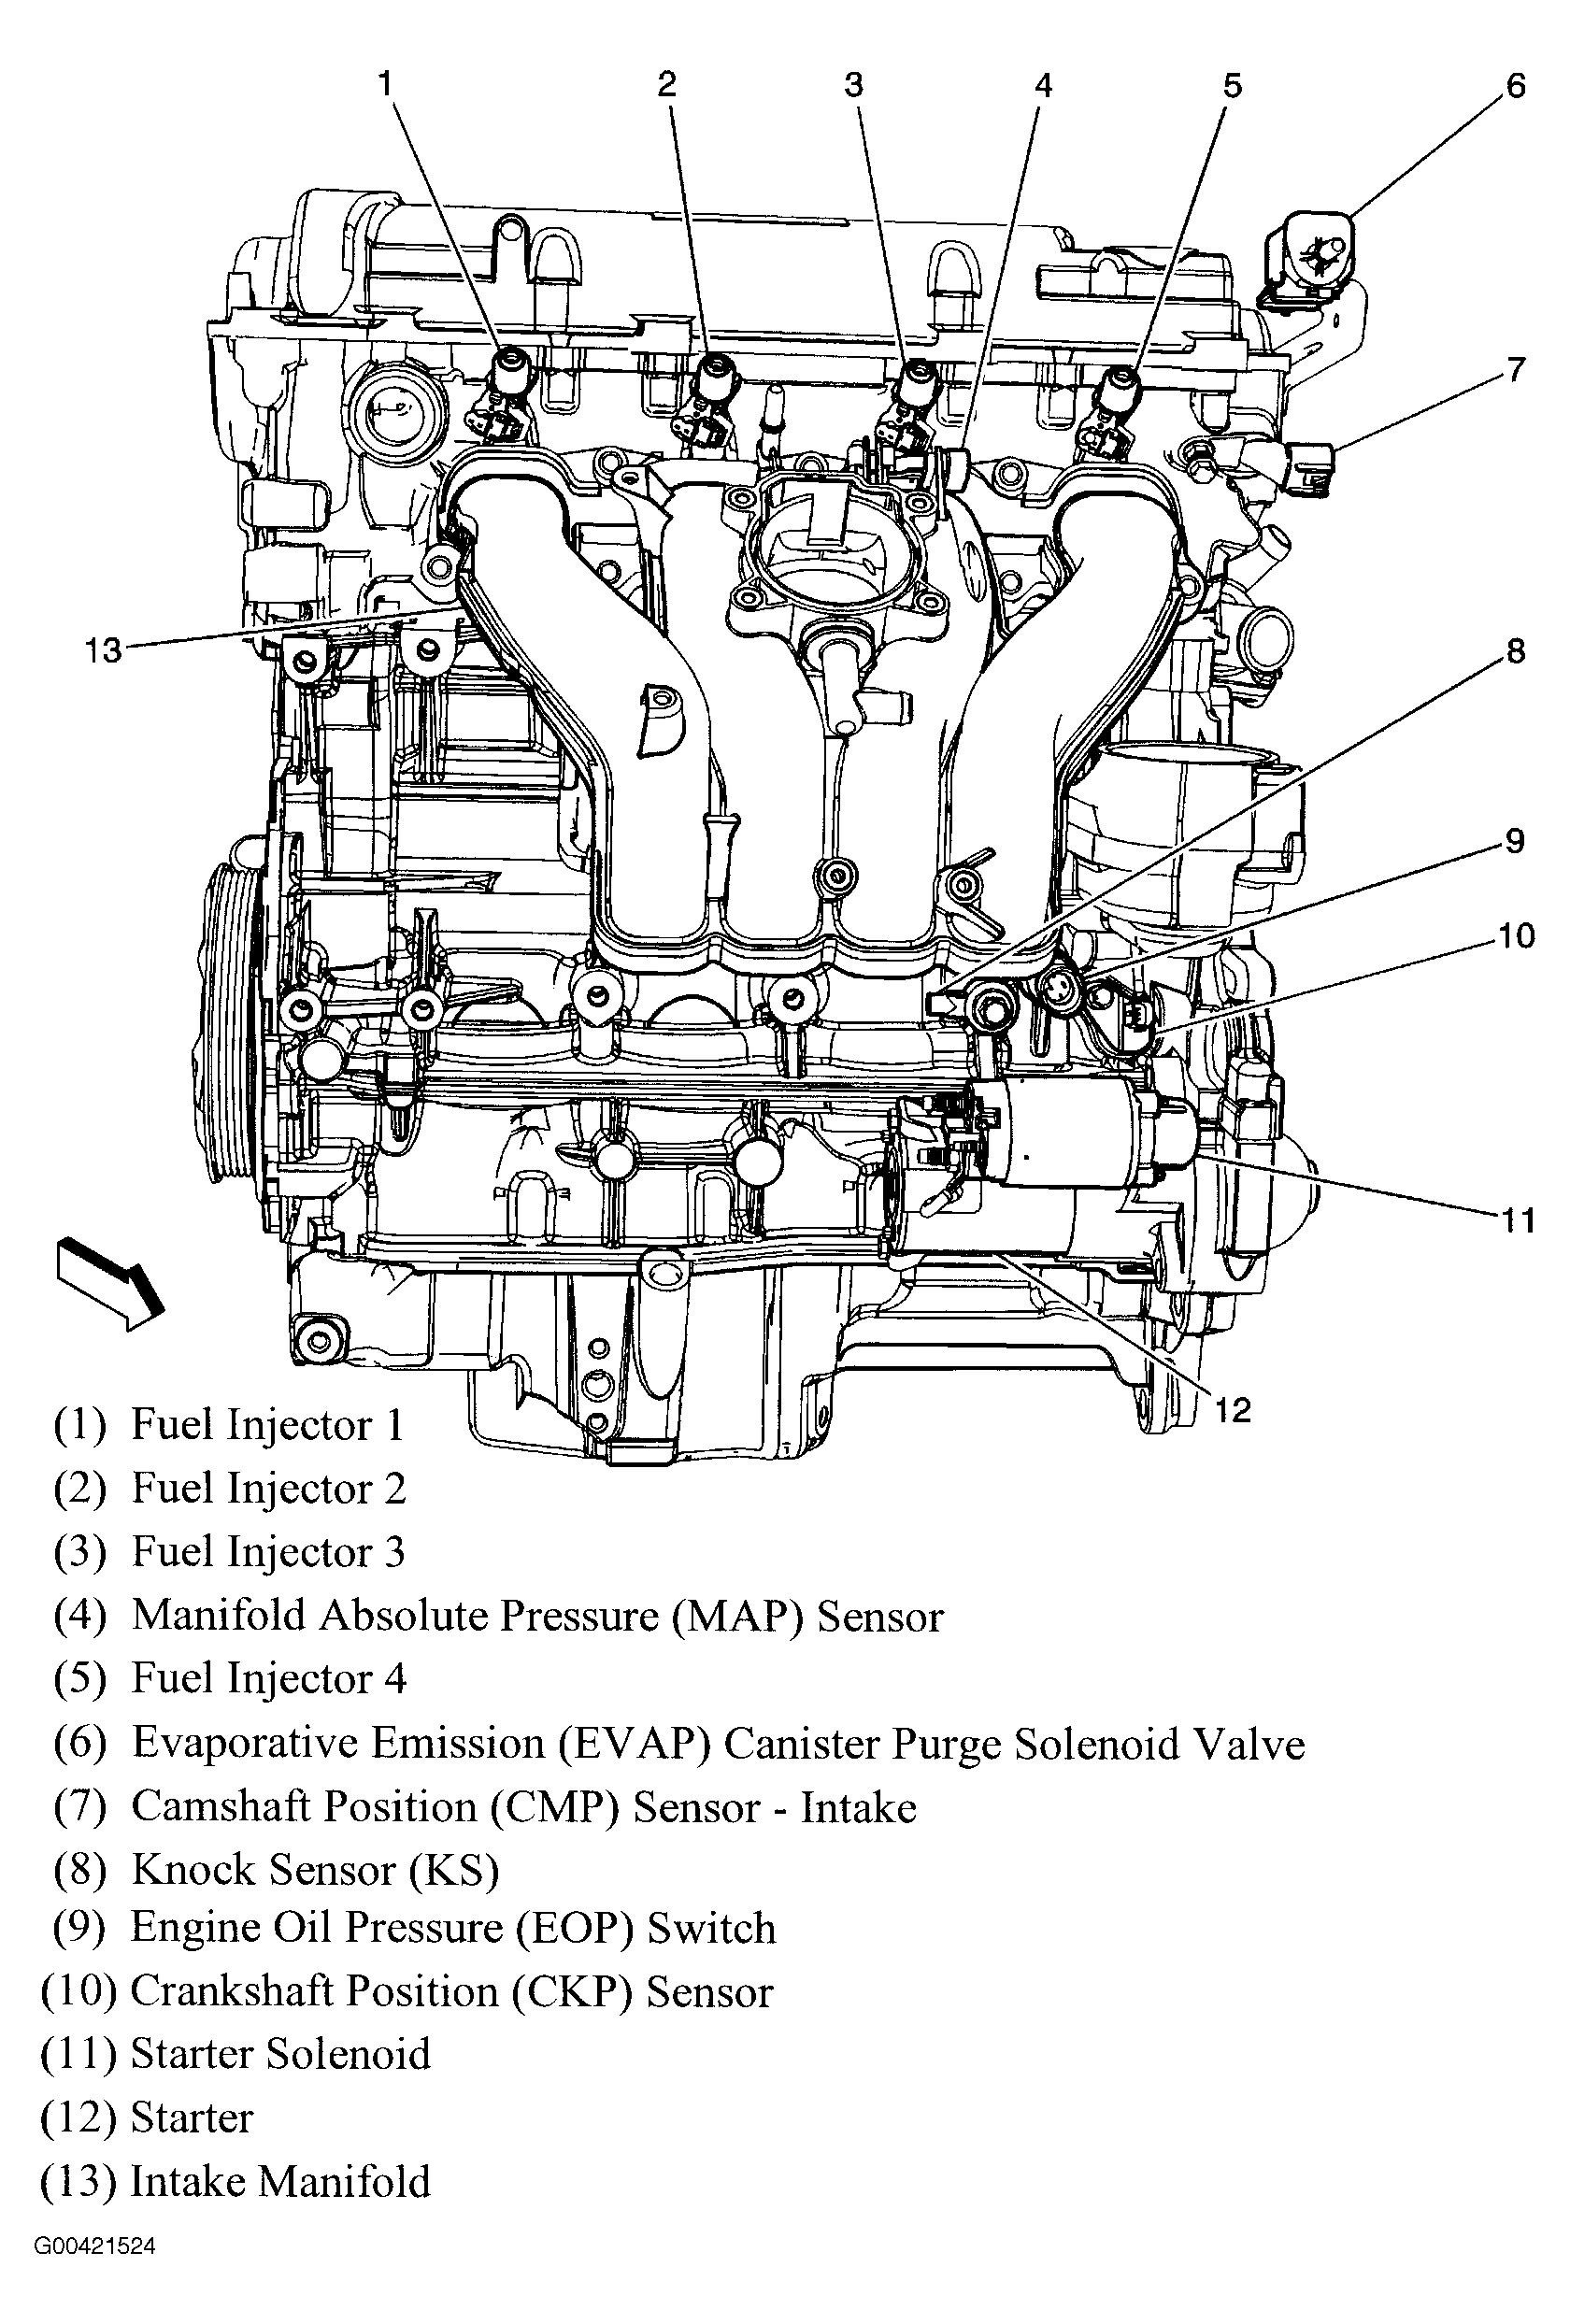 2014 Ford Fusion Oil Type : fusion, Nissan, Engine, Diagram, Wiring, Export, Base-momentum, Base-momentum.congressosifo2018.it